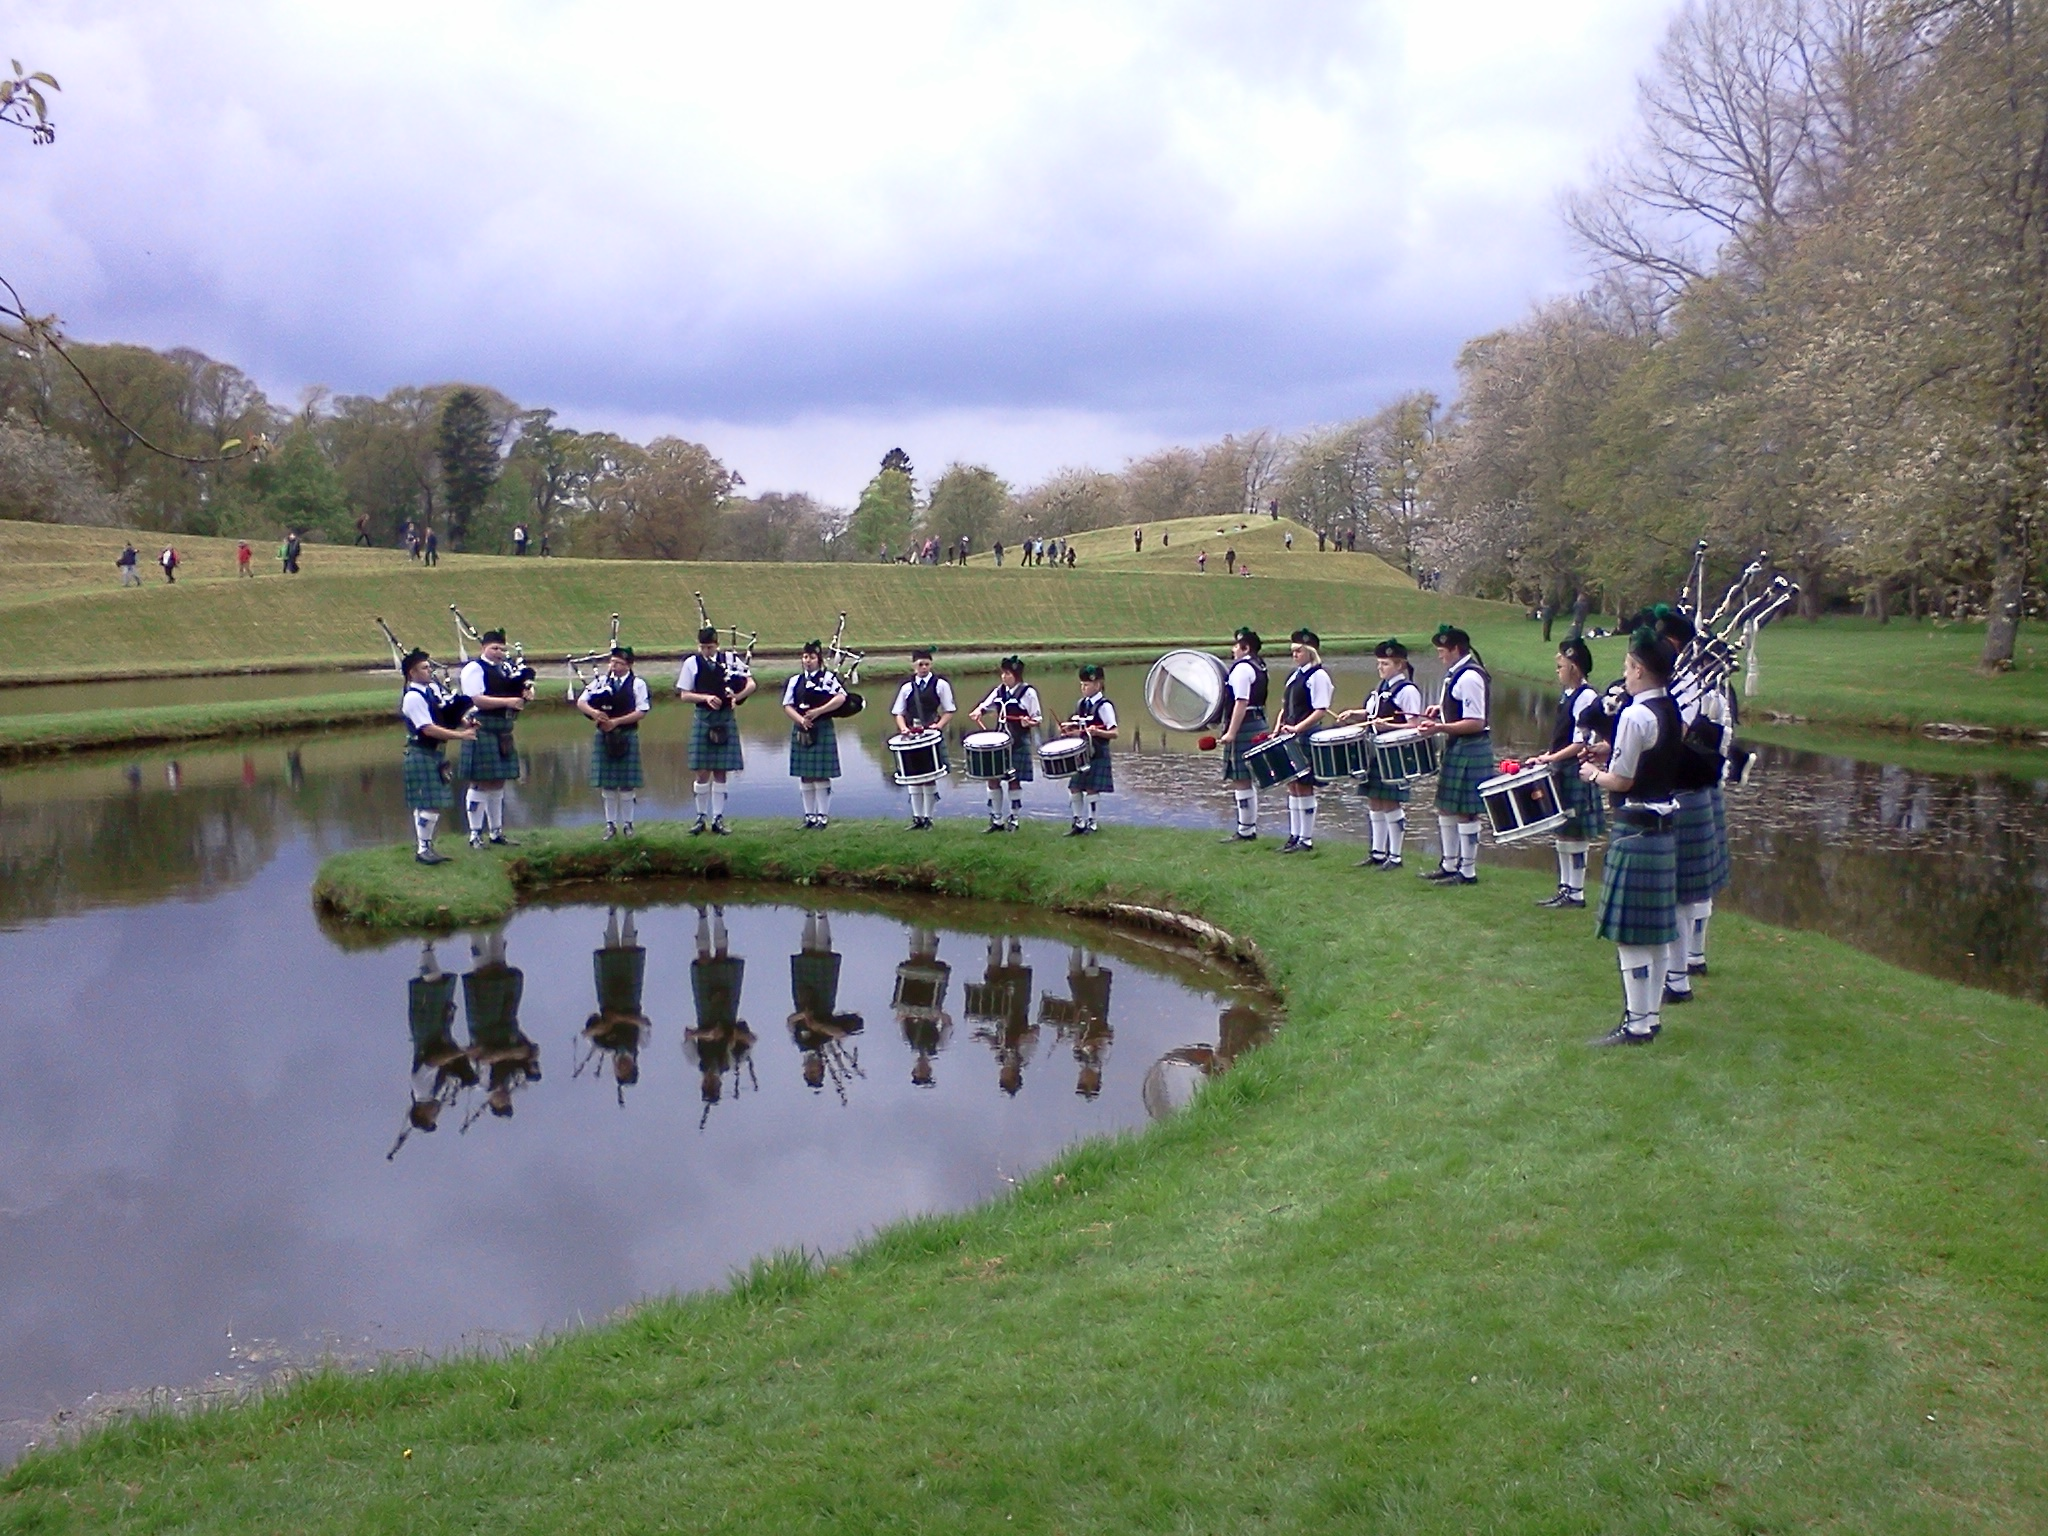 Pipers at the garden of cosmic speculation.